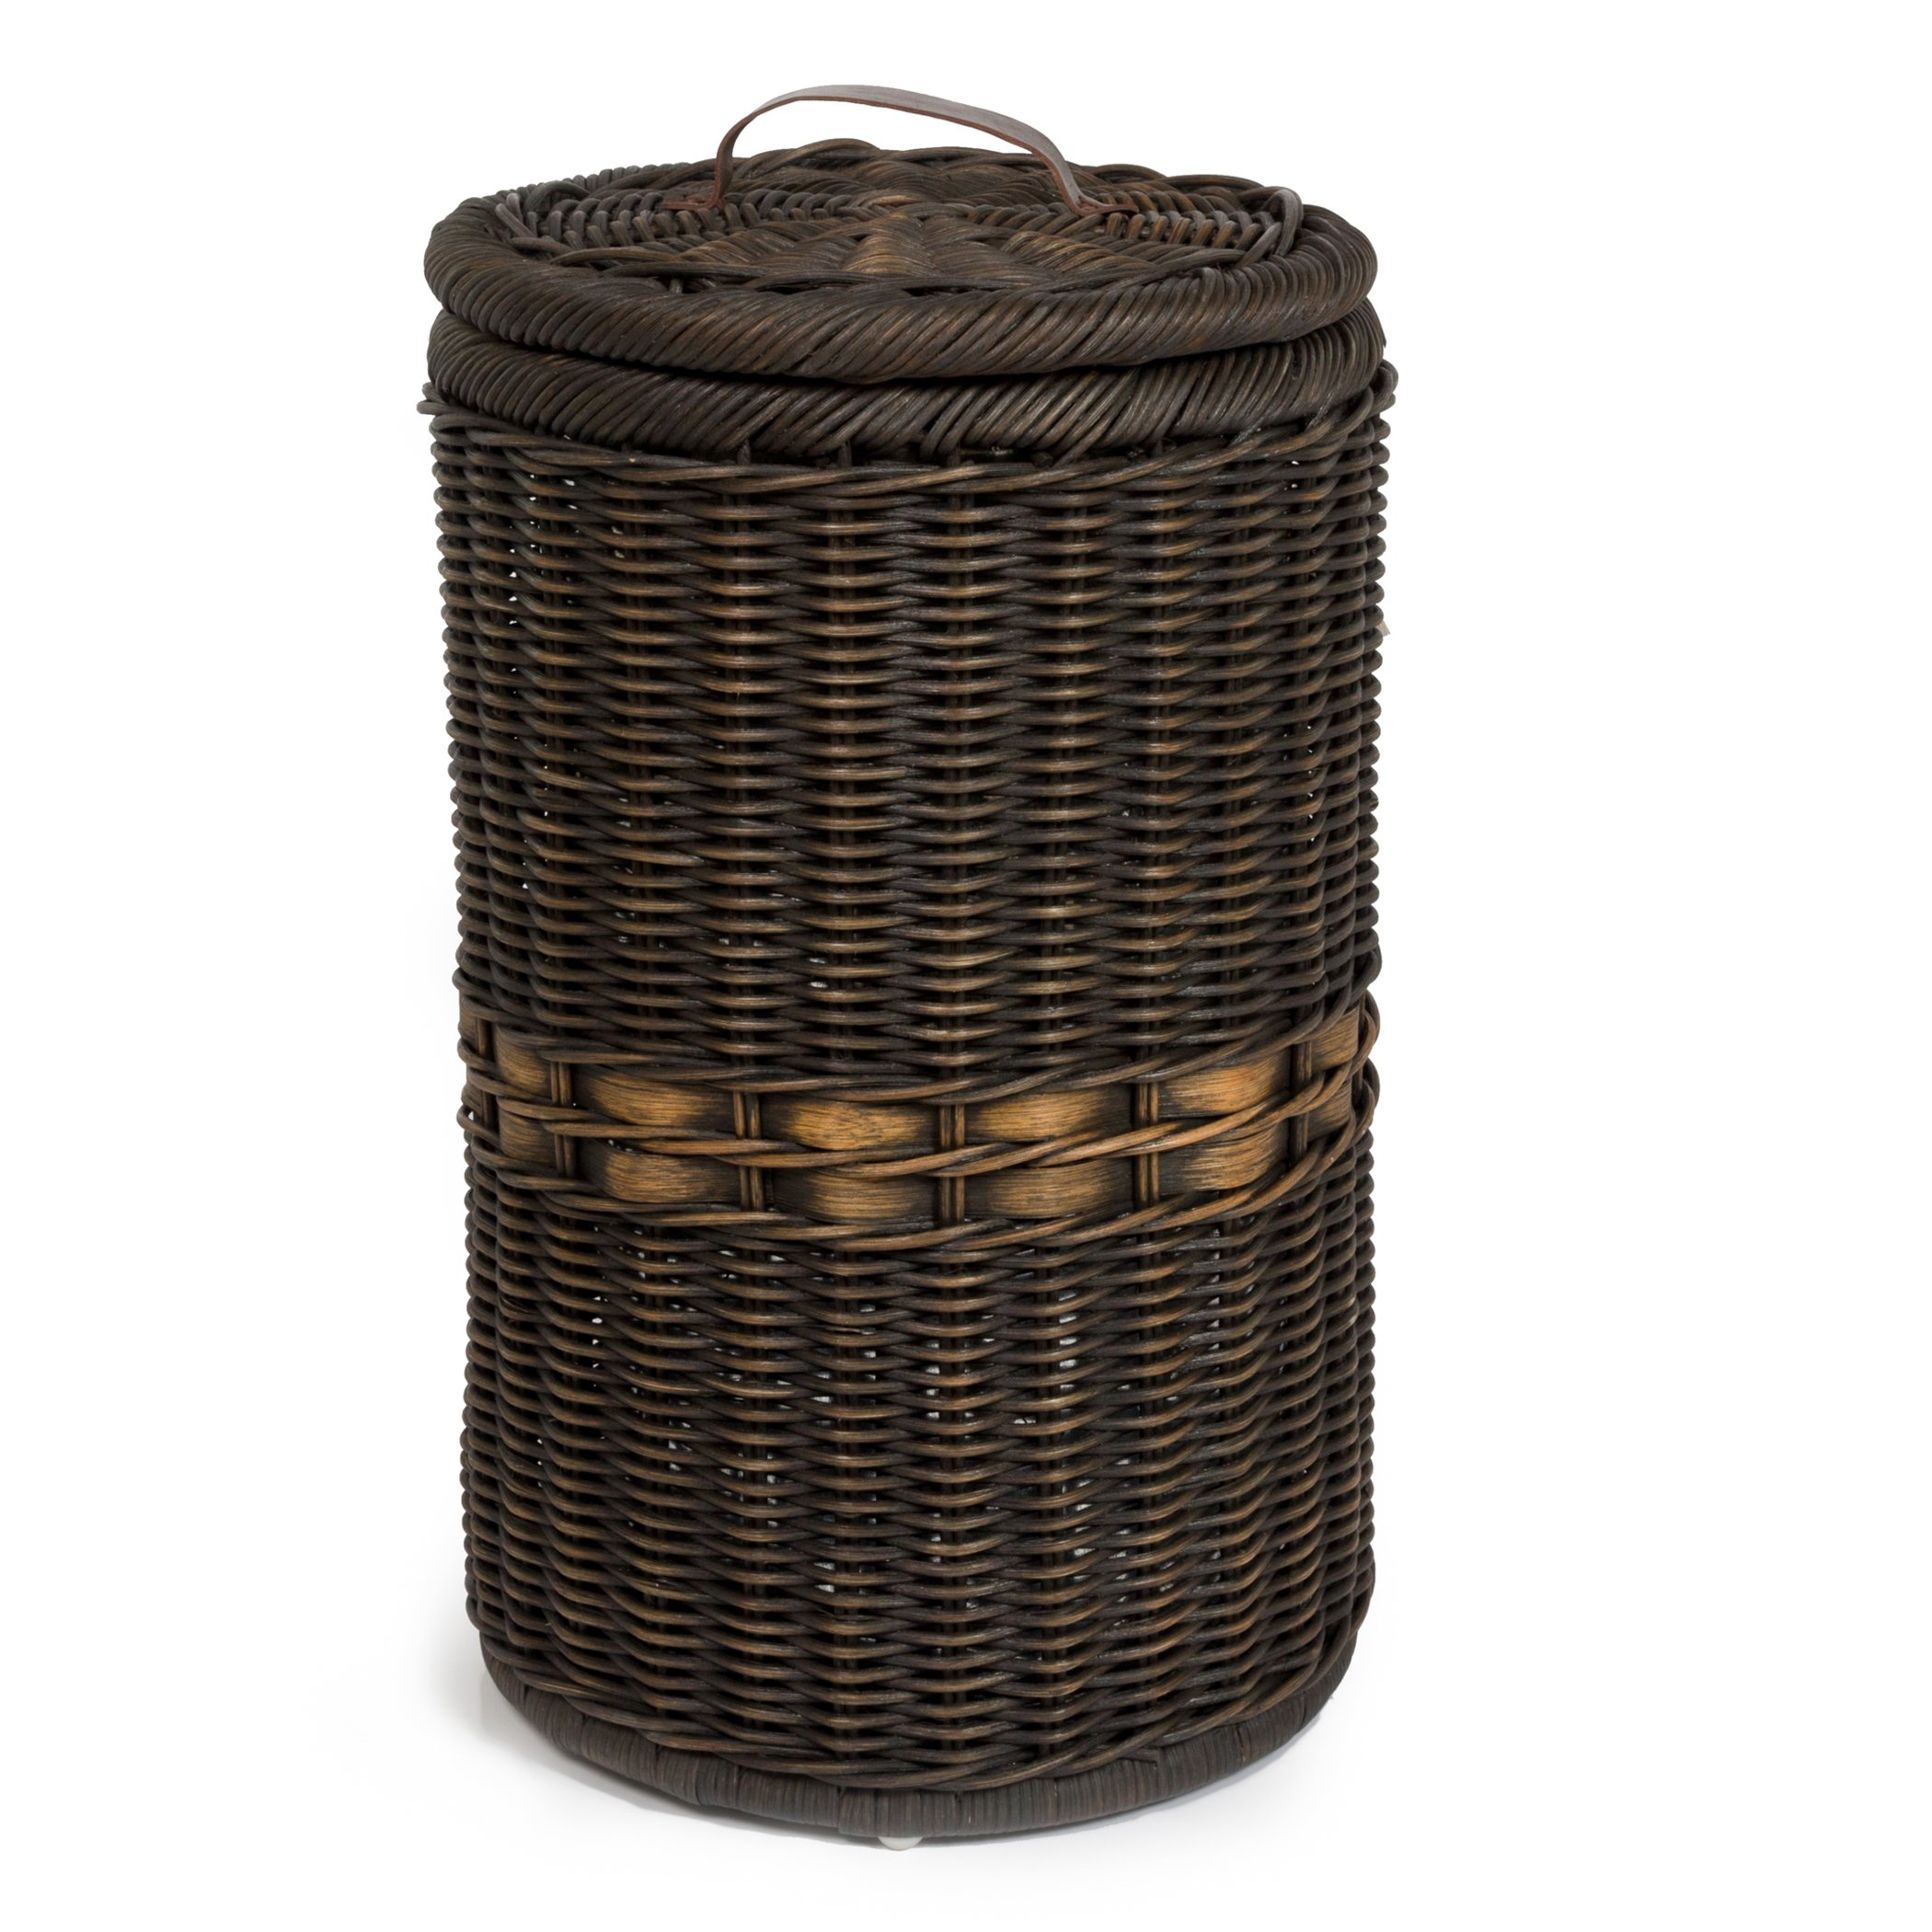 The Basket Lady Tall Wicker Trash Basket with Metal Liner, 15.5 in Dia x 25.5 in H, Antique Walnut Brown by The Basket Lady